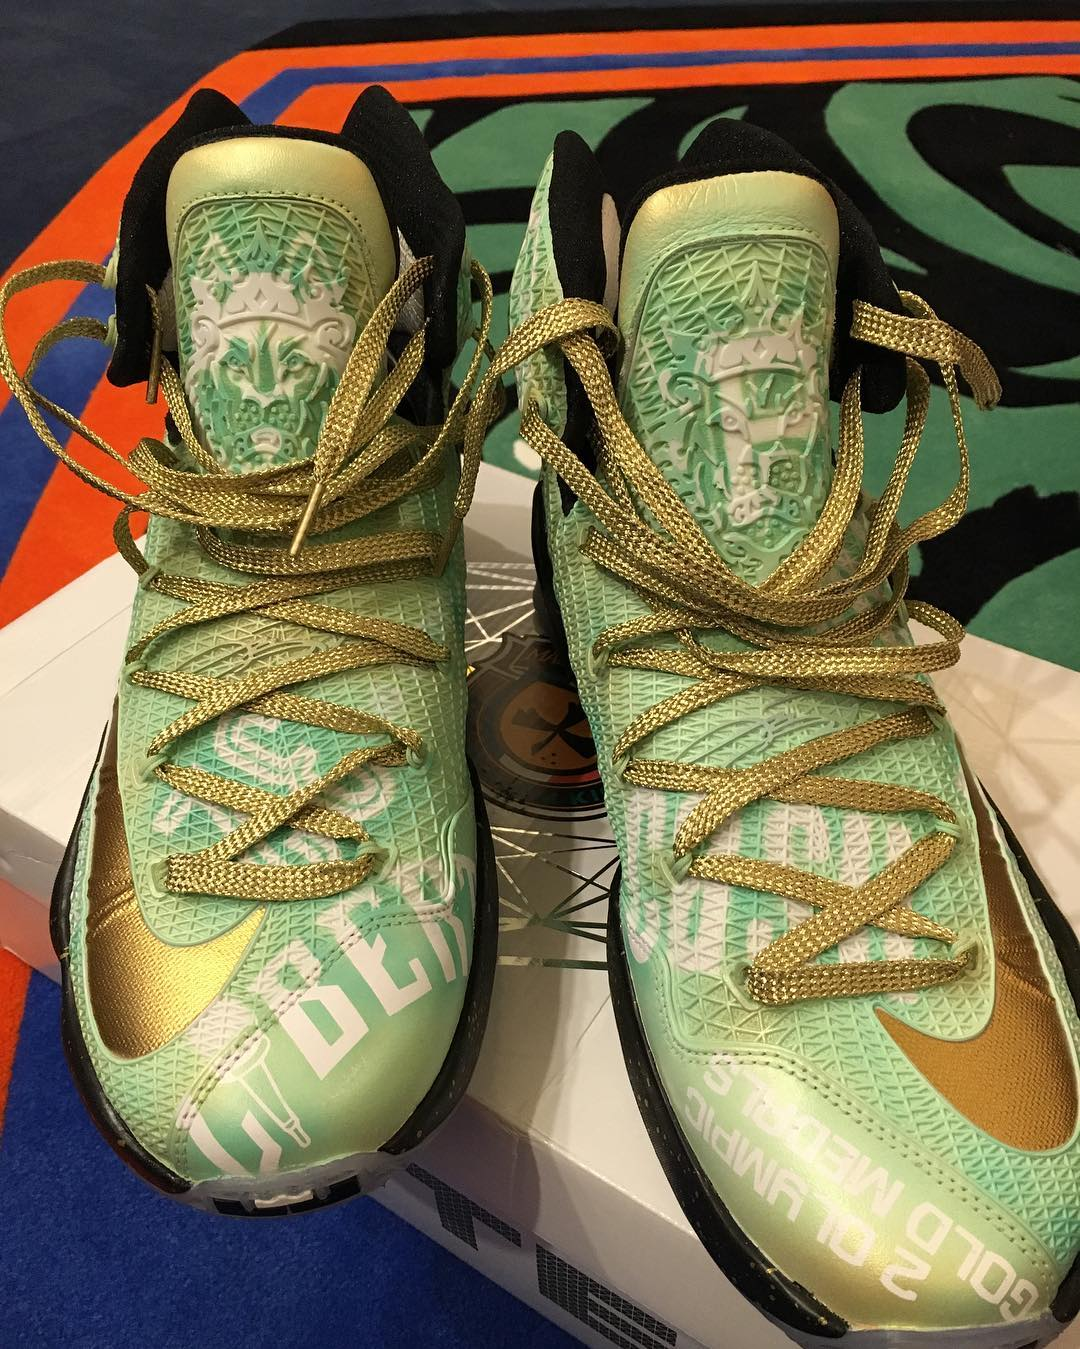 Nike LeBron 13 Elite Swin Cash Retirement Custom